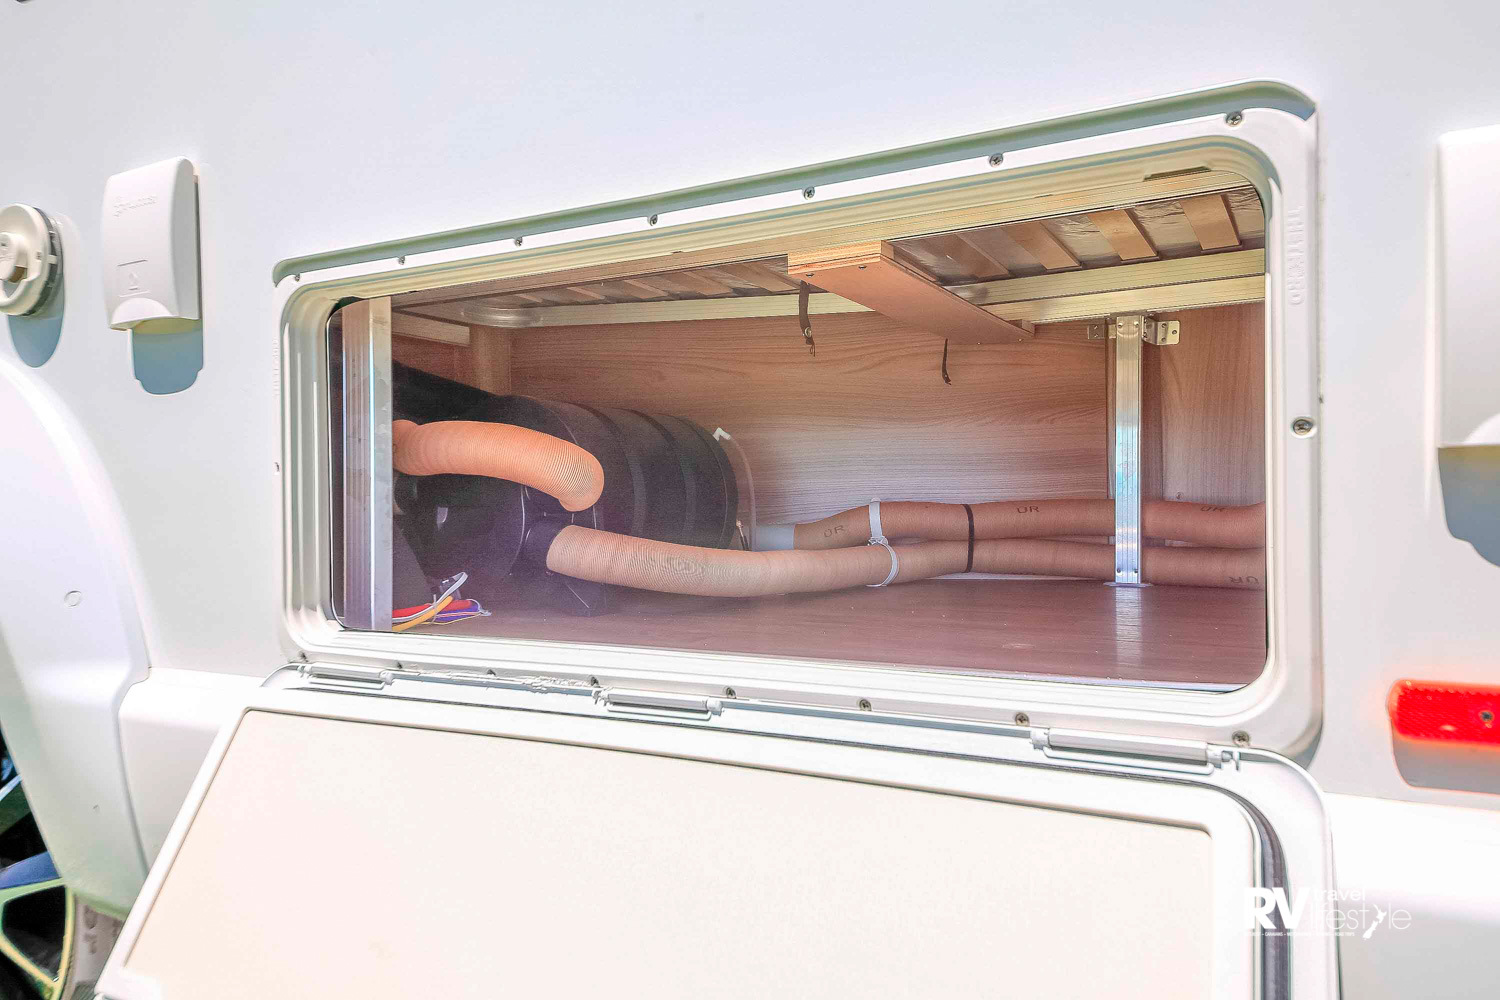 This nippy wee motorhome has good storage inside and out